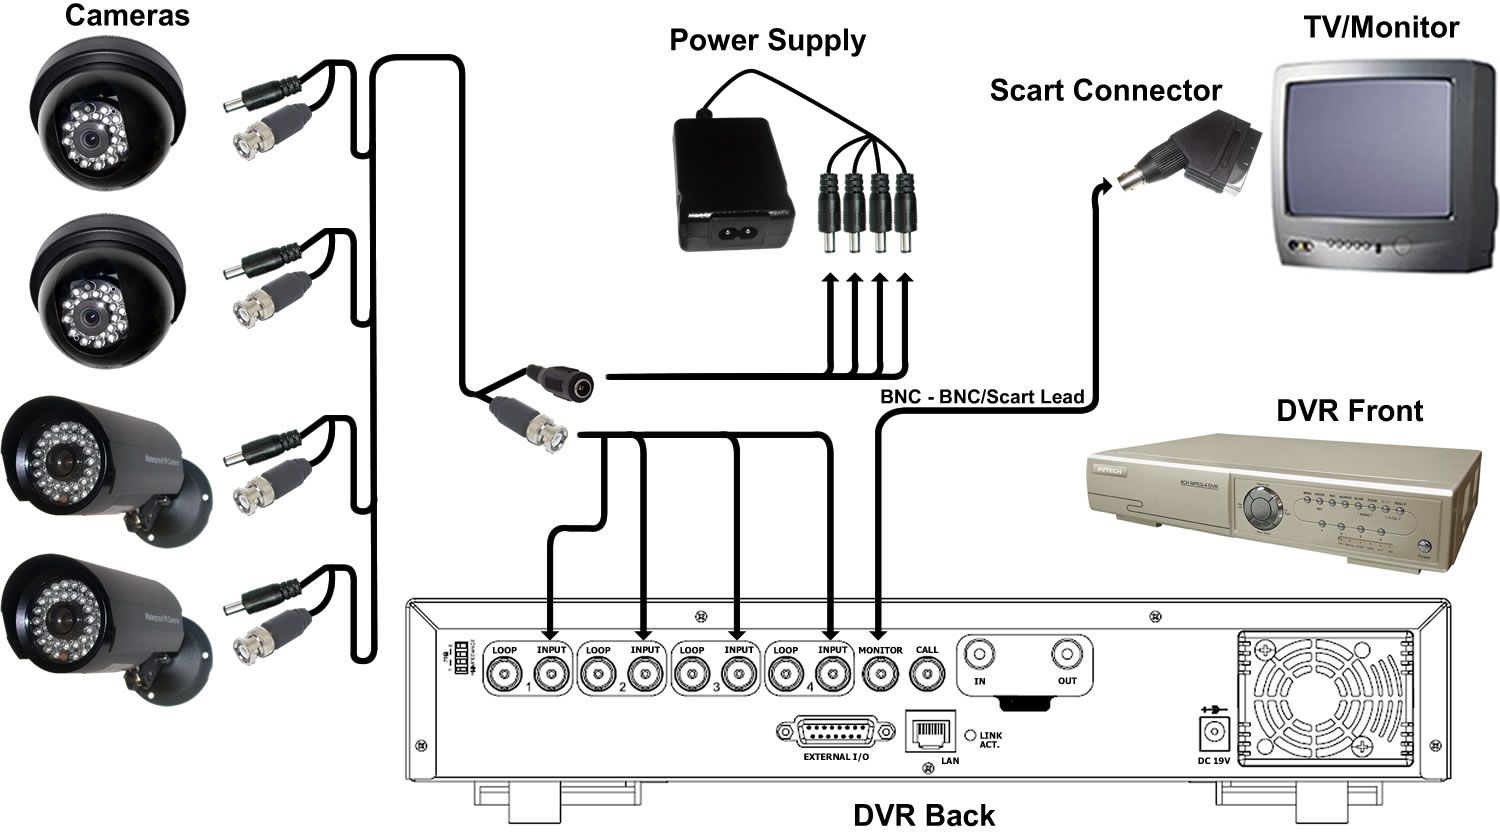 Cctv Cameras Wiring Diagram - Wiring Diagrams Hubs - Cctv Camera Wiring Diagram